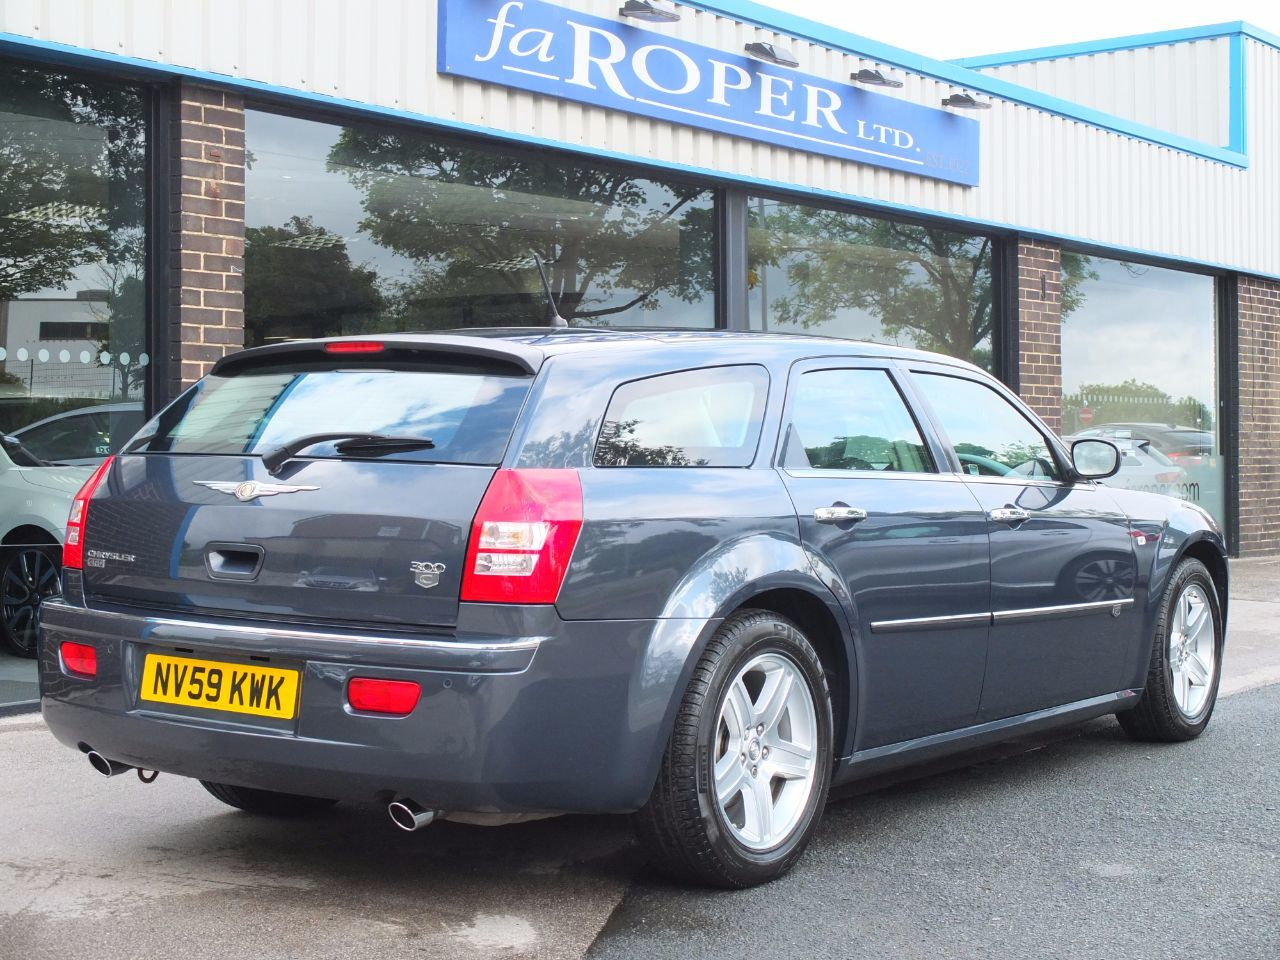 Chrysler 300C 3.0 V6 CRD Touring Auto Lux Pack Estate Diesel Slate Blue Metallic